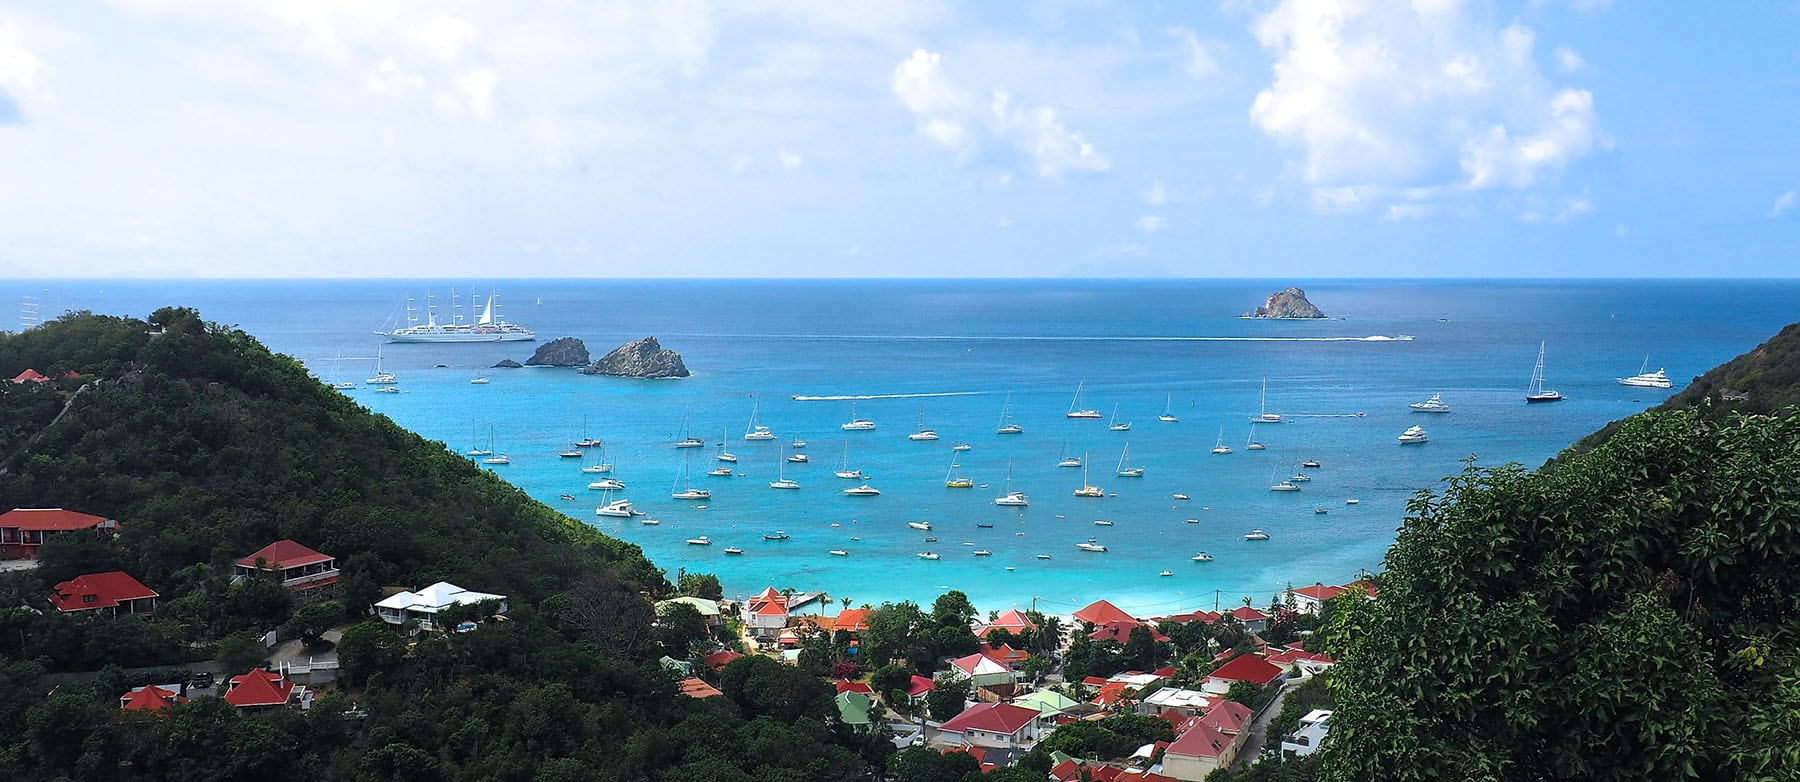 Walk the Mile in St. Barth